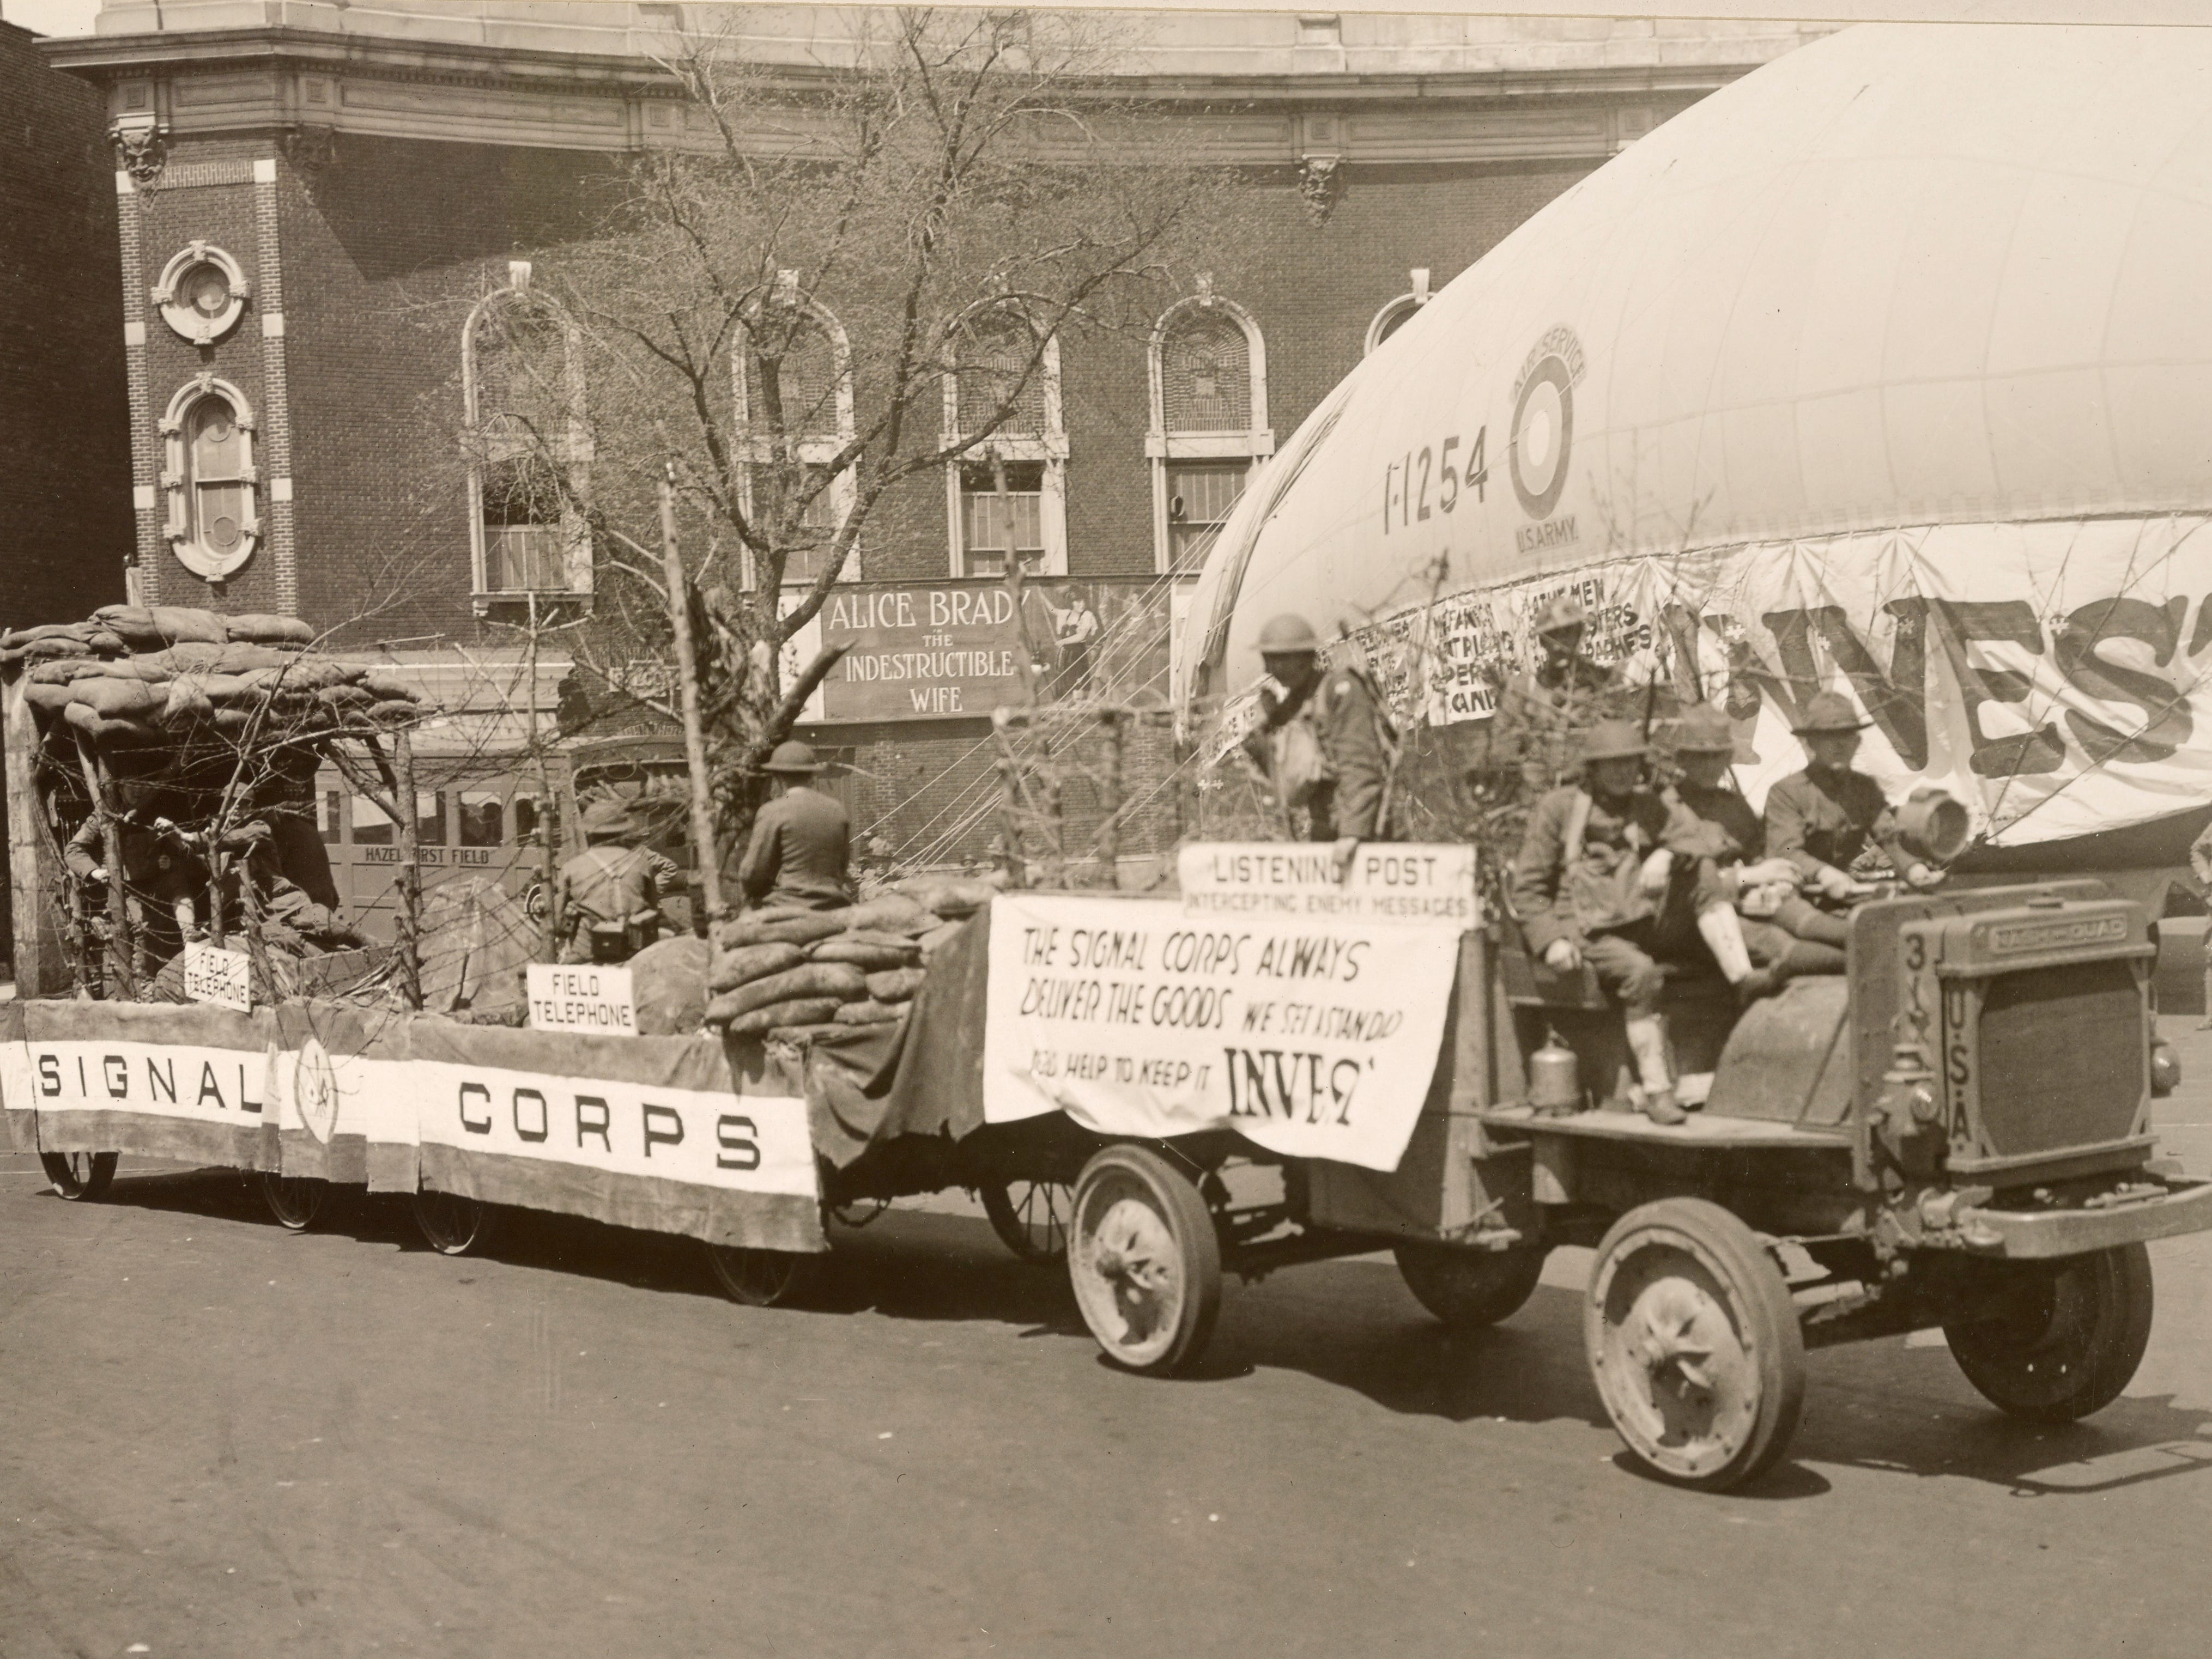 The U.S. Signal Corps has a float in the welcome home parade in New York City on May 3, 1919.